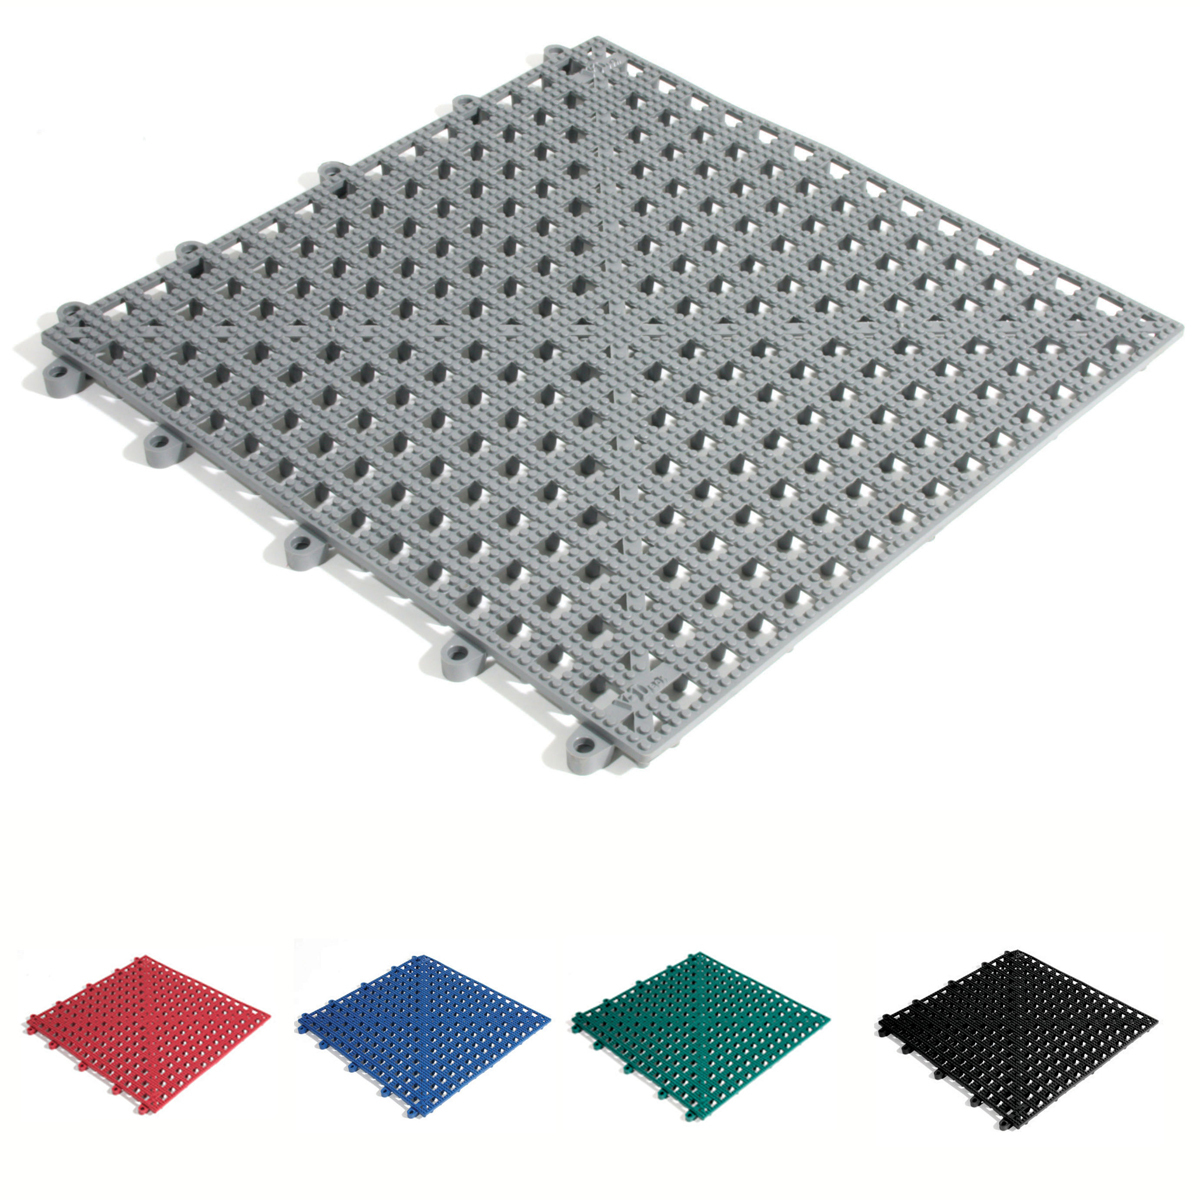 Flexi-Deck Wet Area Drainage Mats